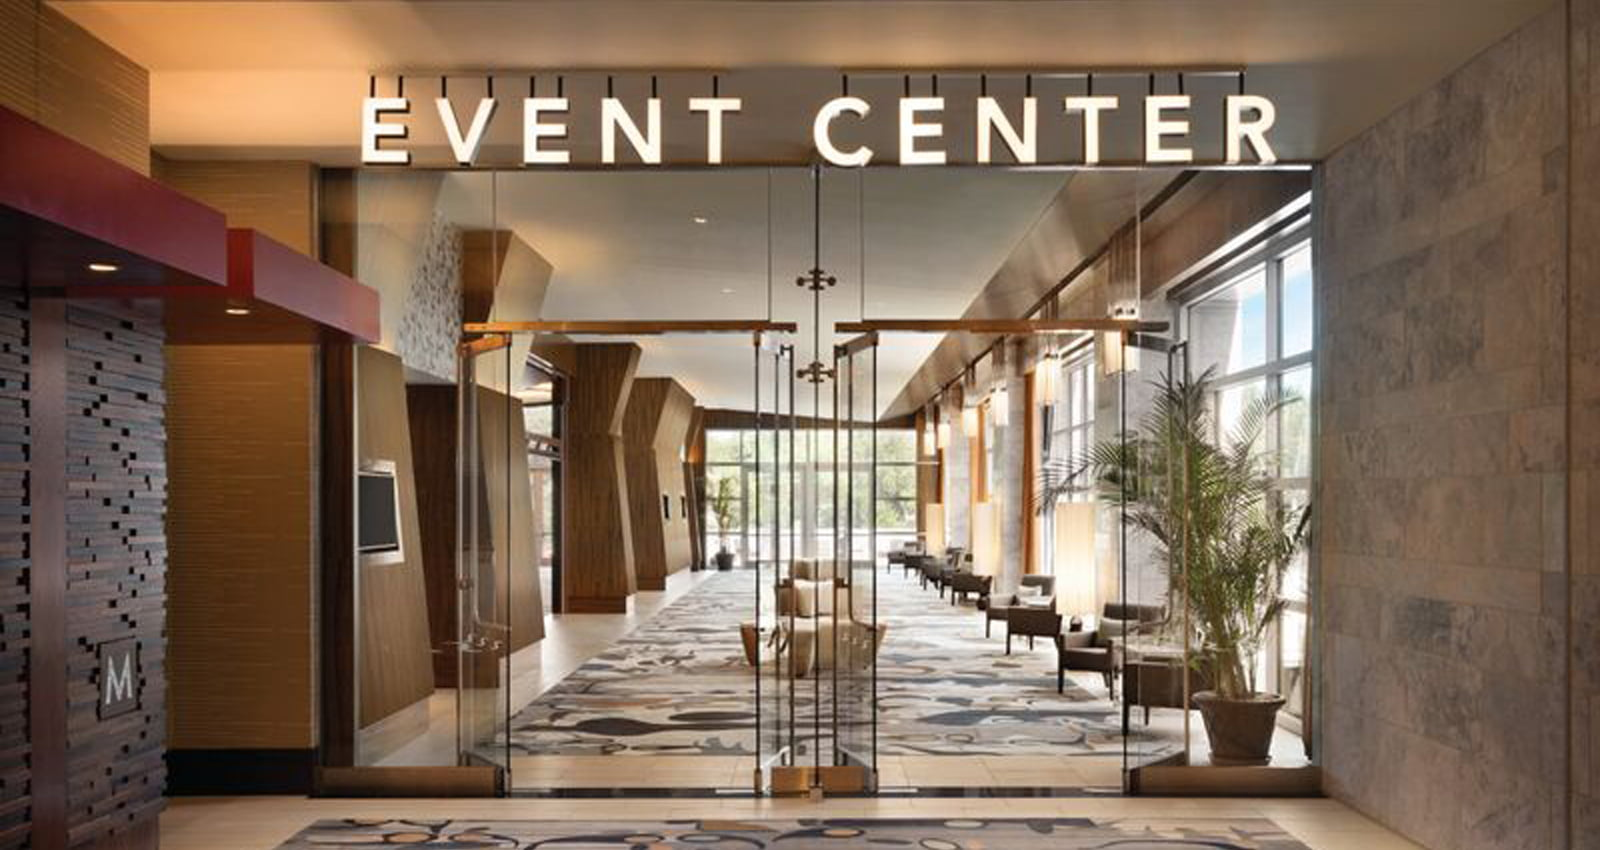 The Event Center at Rivers Casino & Resort. | Photo Courtesy of Rivers Casino & Resort